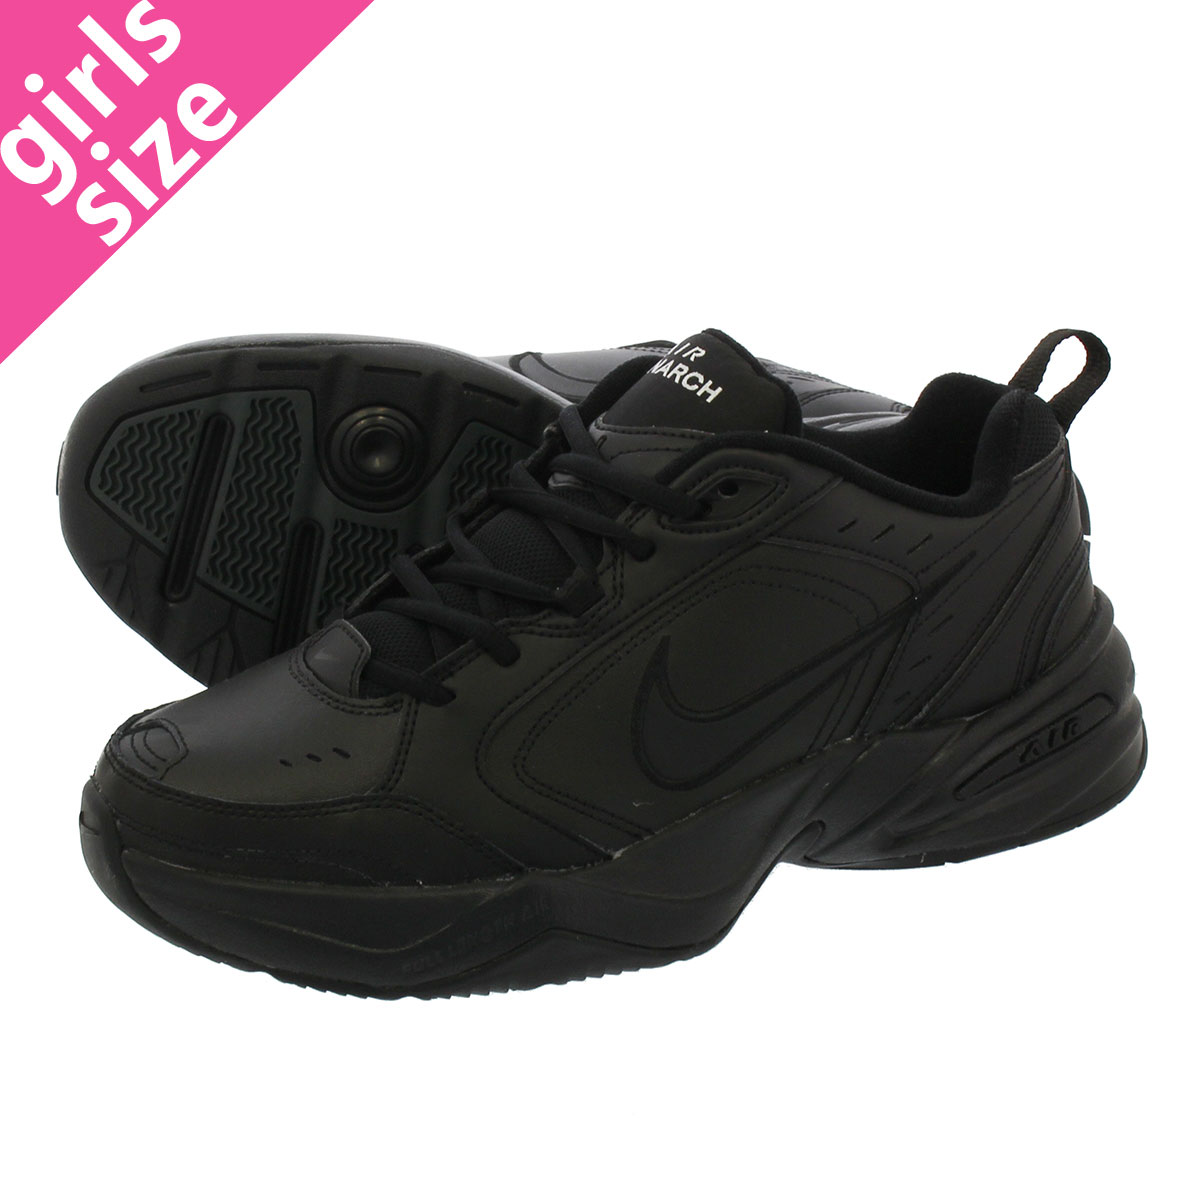 NIKE AIR MONARCH IV ナイキエアモナーク 4 BLACKBLACK 415,445 001